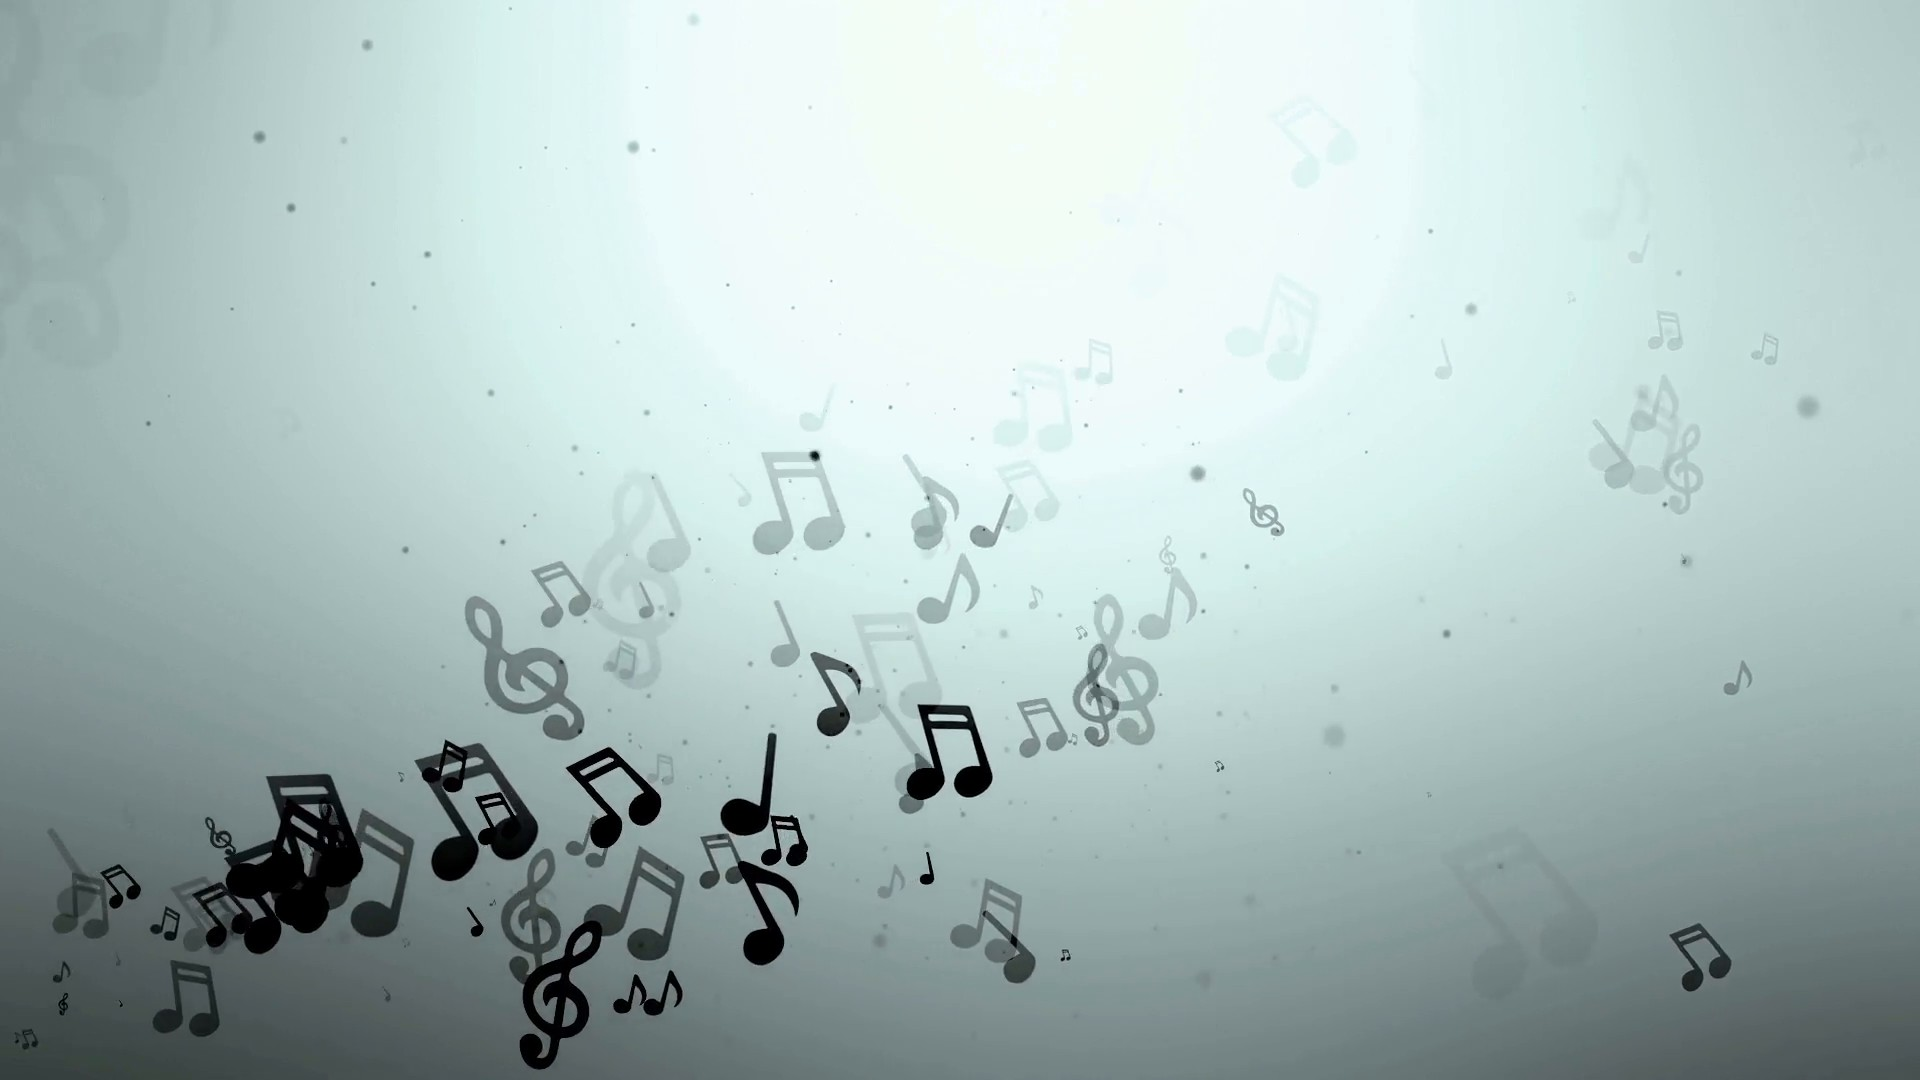 Music notes background download free awesome hd - Wallpaper 1920x1080 music ...